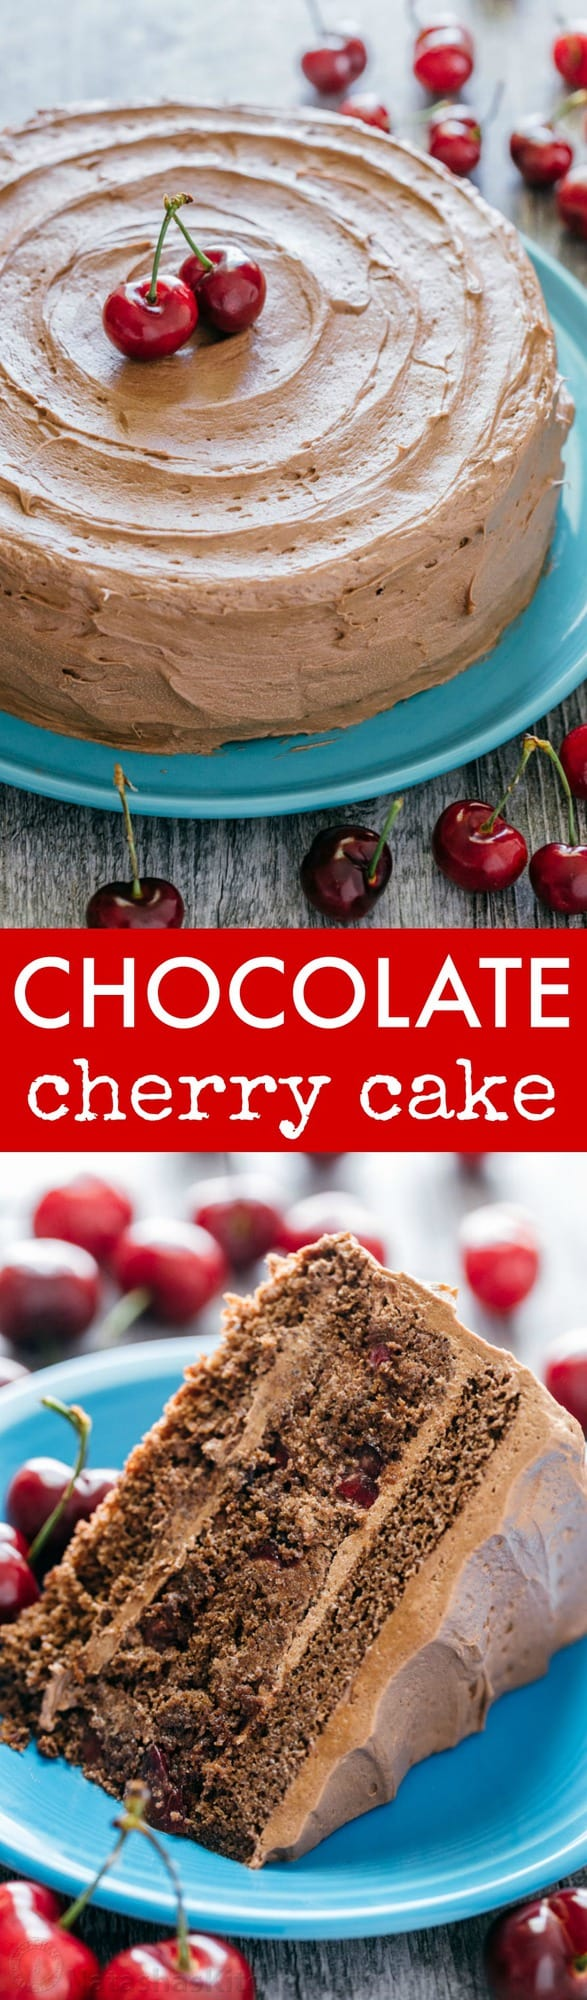 Chocolate Cherry Cake Recipe - NatashasKitchen.com